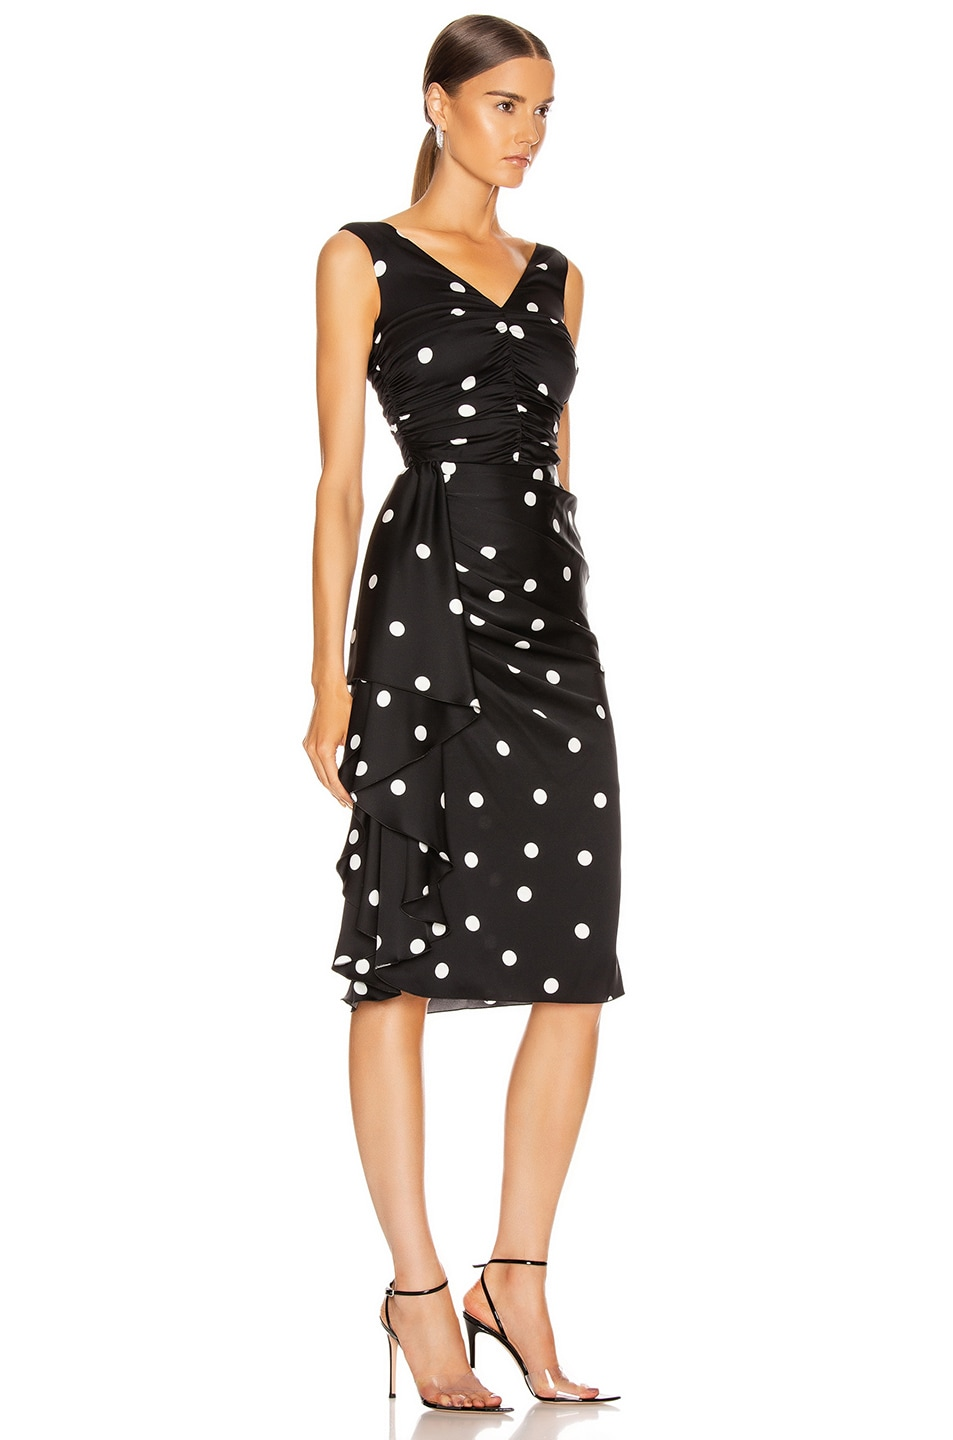 Image 2 of Dolce & Gabbana Polka Dots Dress in Black